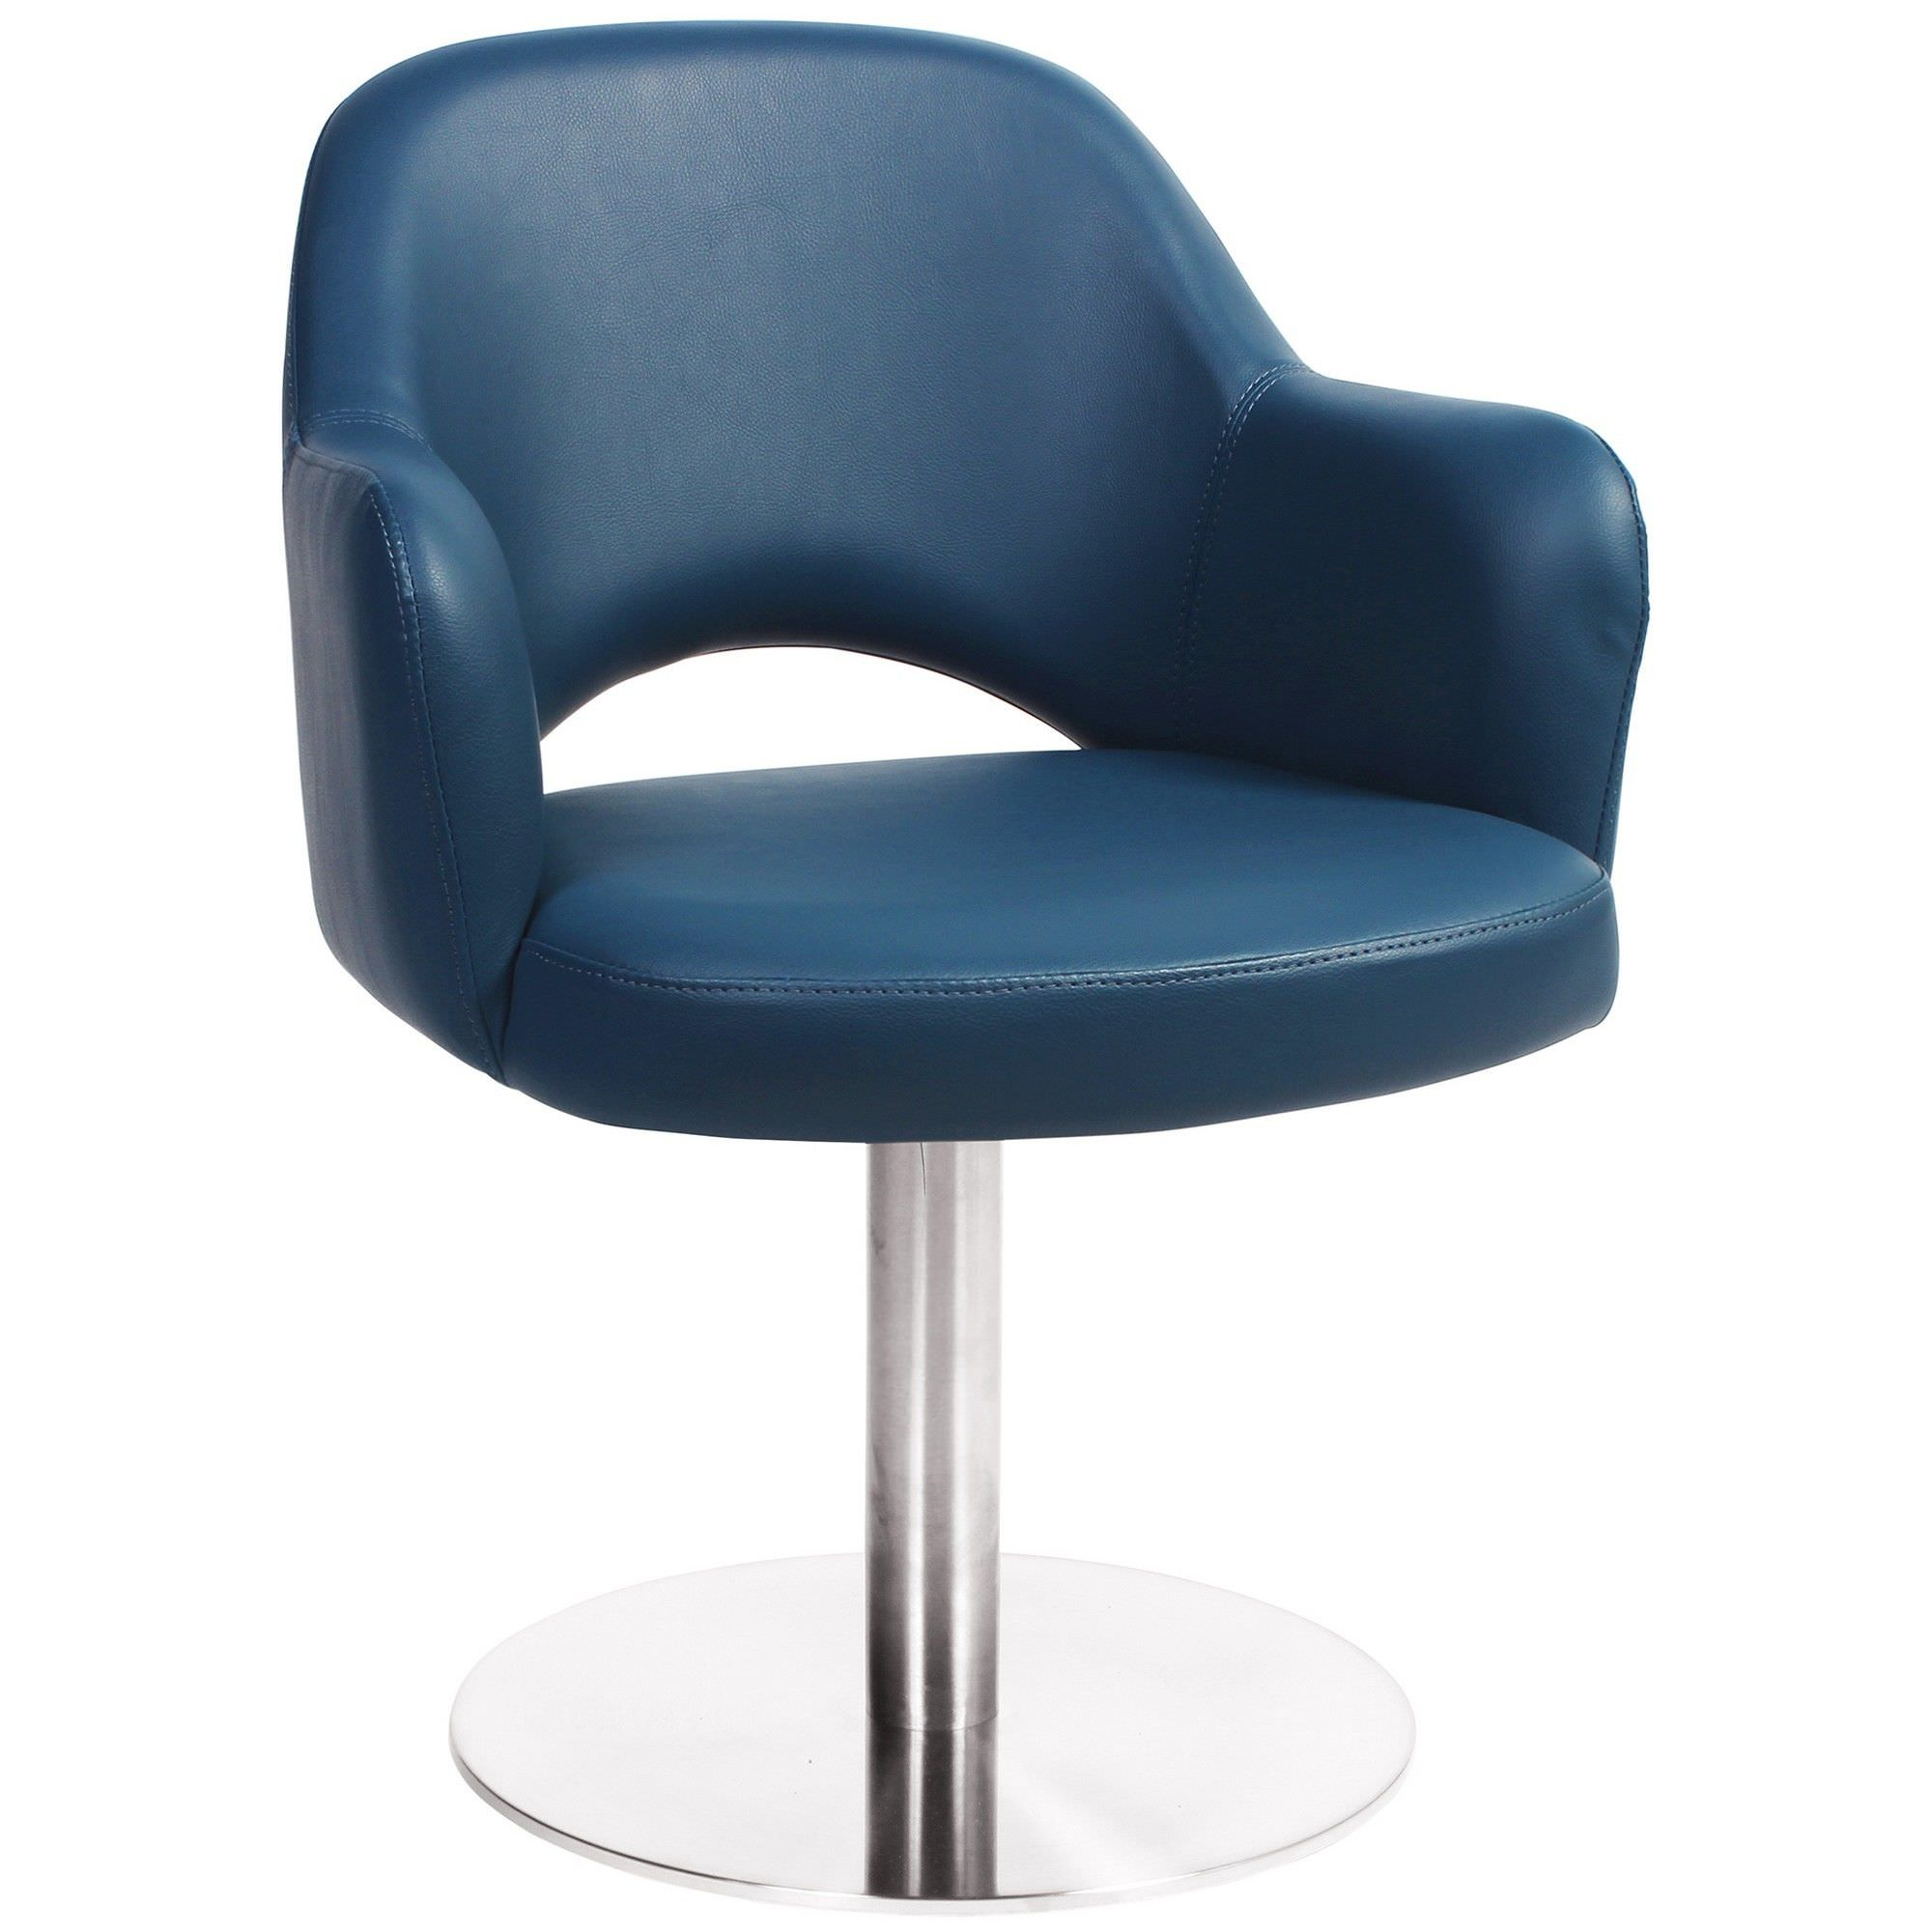 Albury Commercial Grade Vinyl Dining Stool with Arm, Metal Disc Base, Blue / Silver